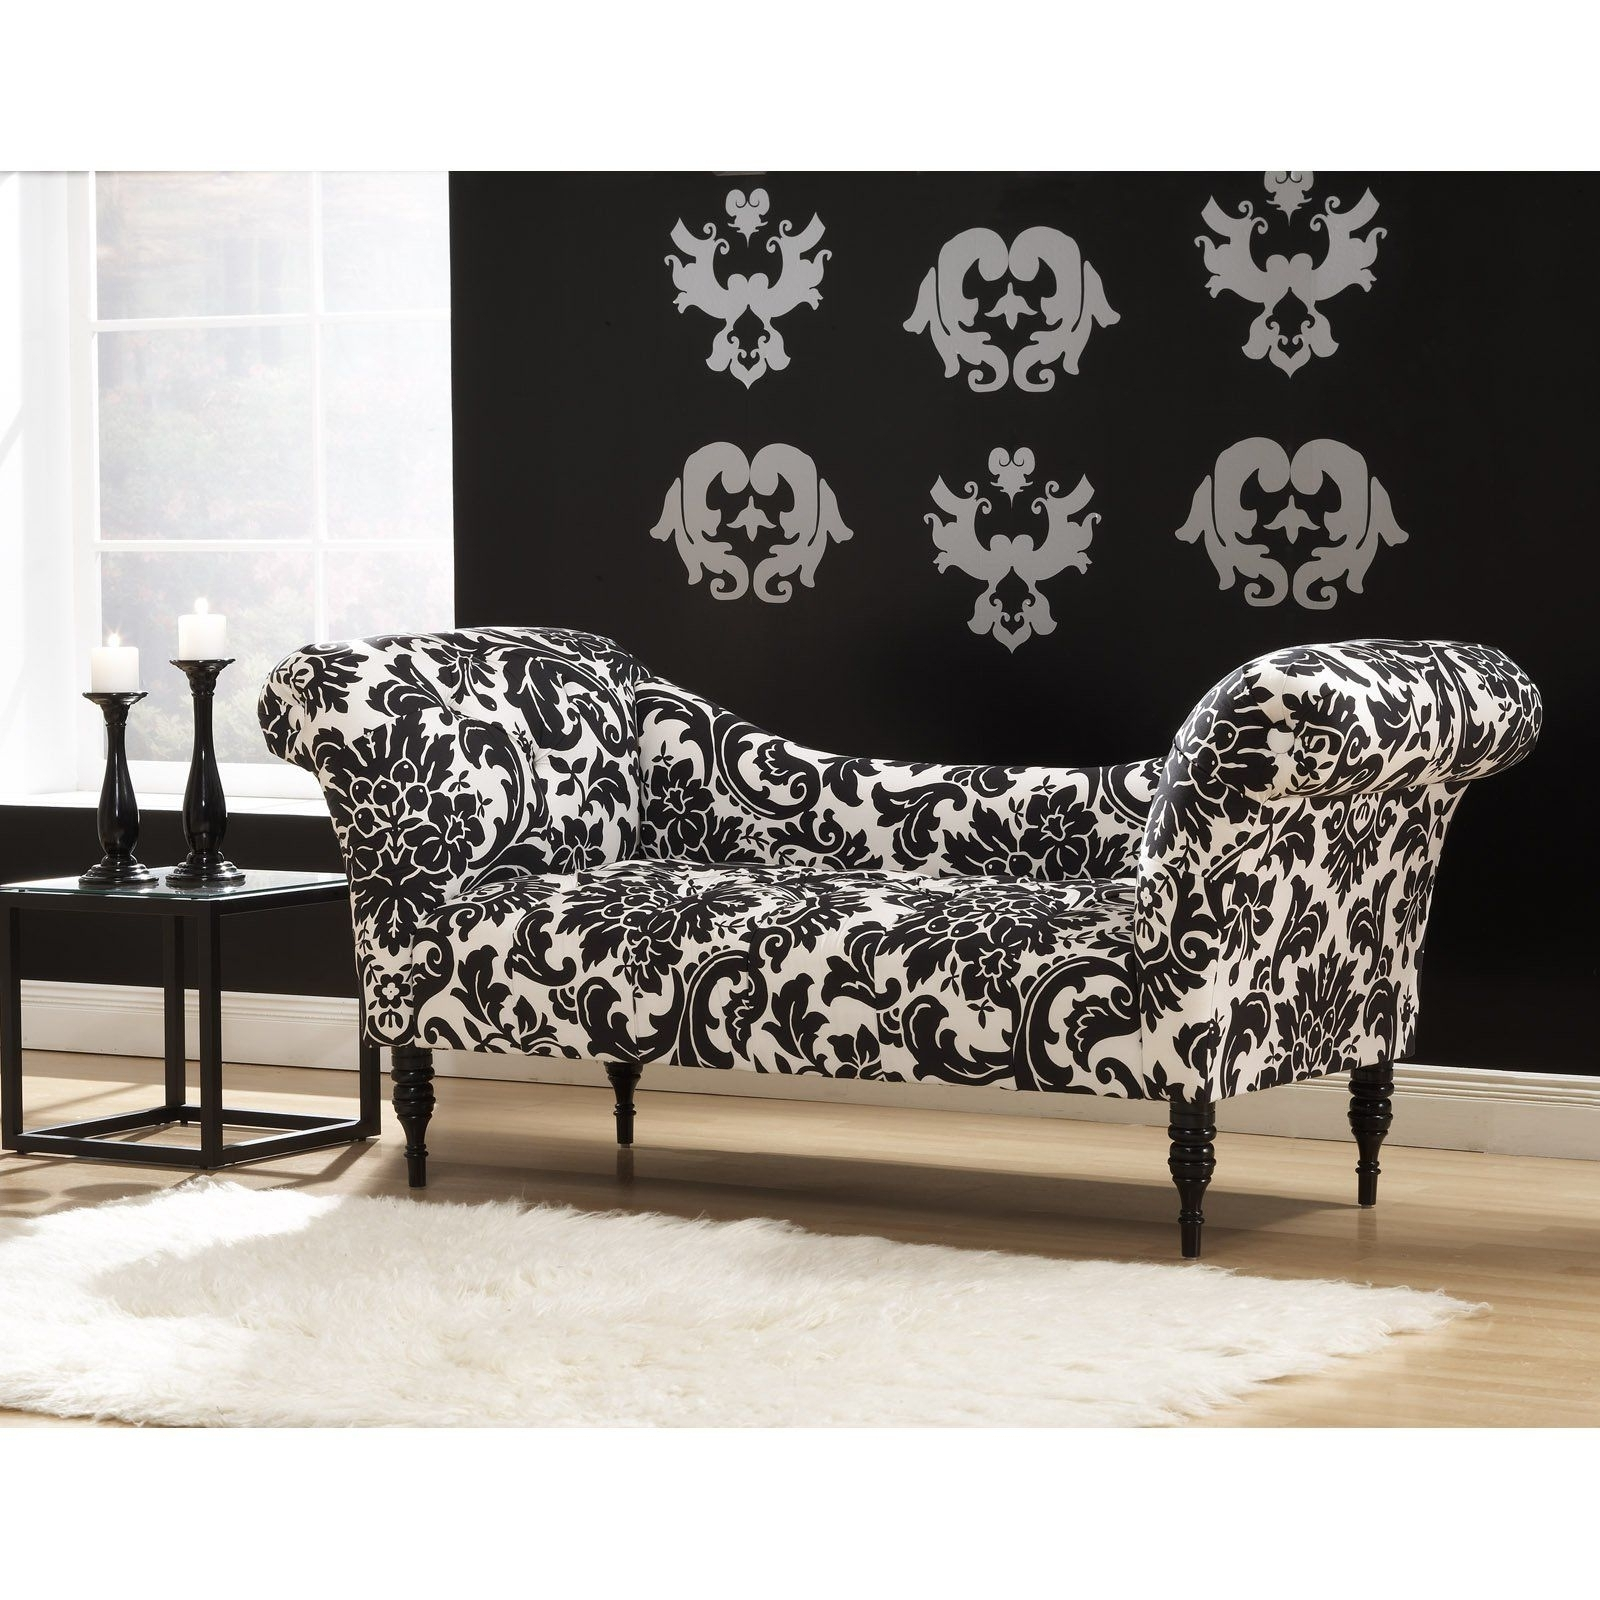 Black And White Chaise Lounge Chair • Lounge Chairs Ideas In Well Known Black Indoors Chaise Lounge Chairs (View 9 of 15)